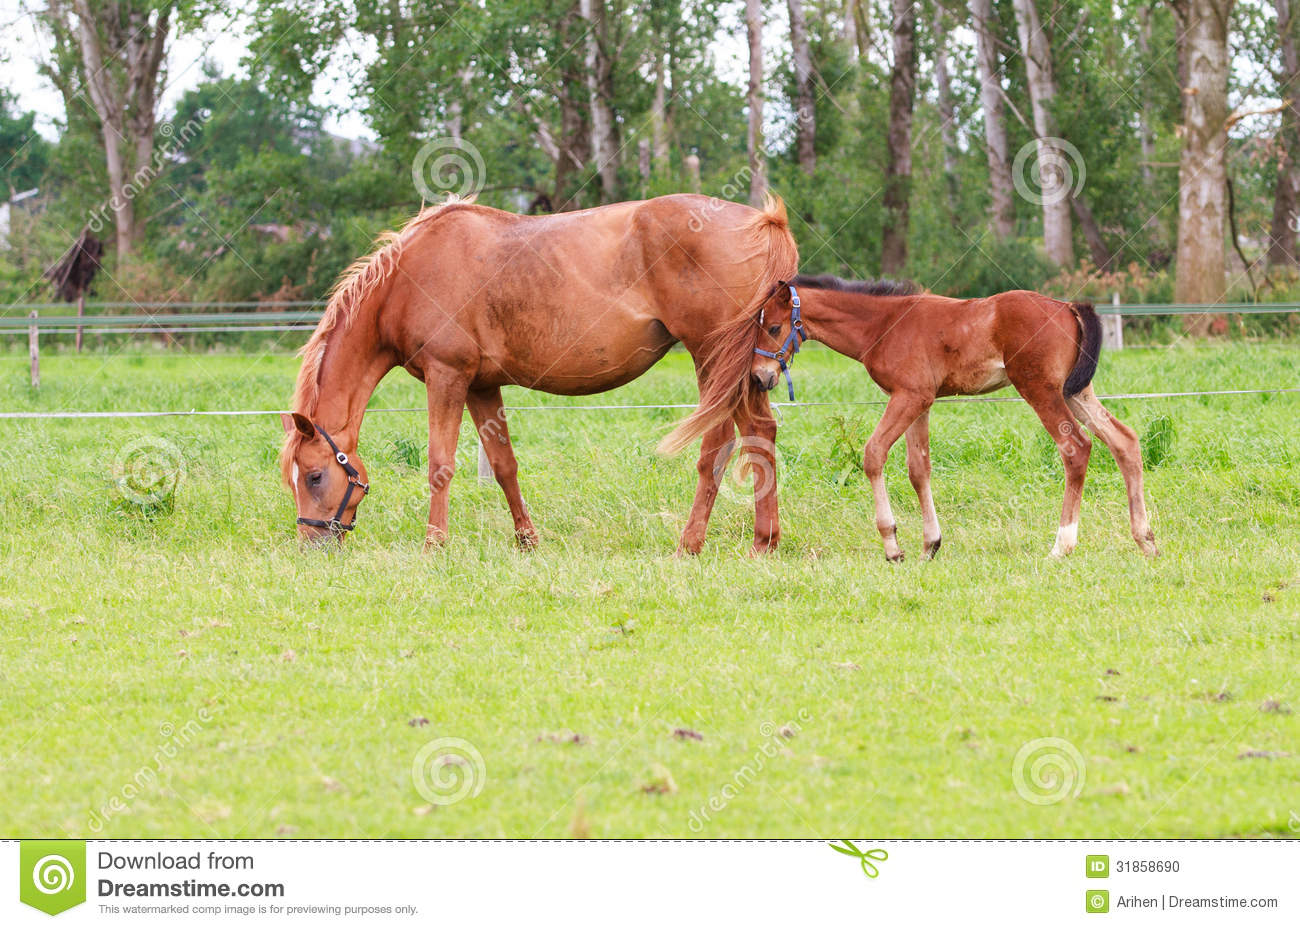 how to tell if a mare is in foal